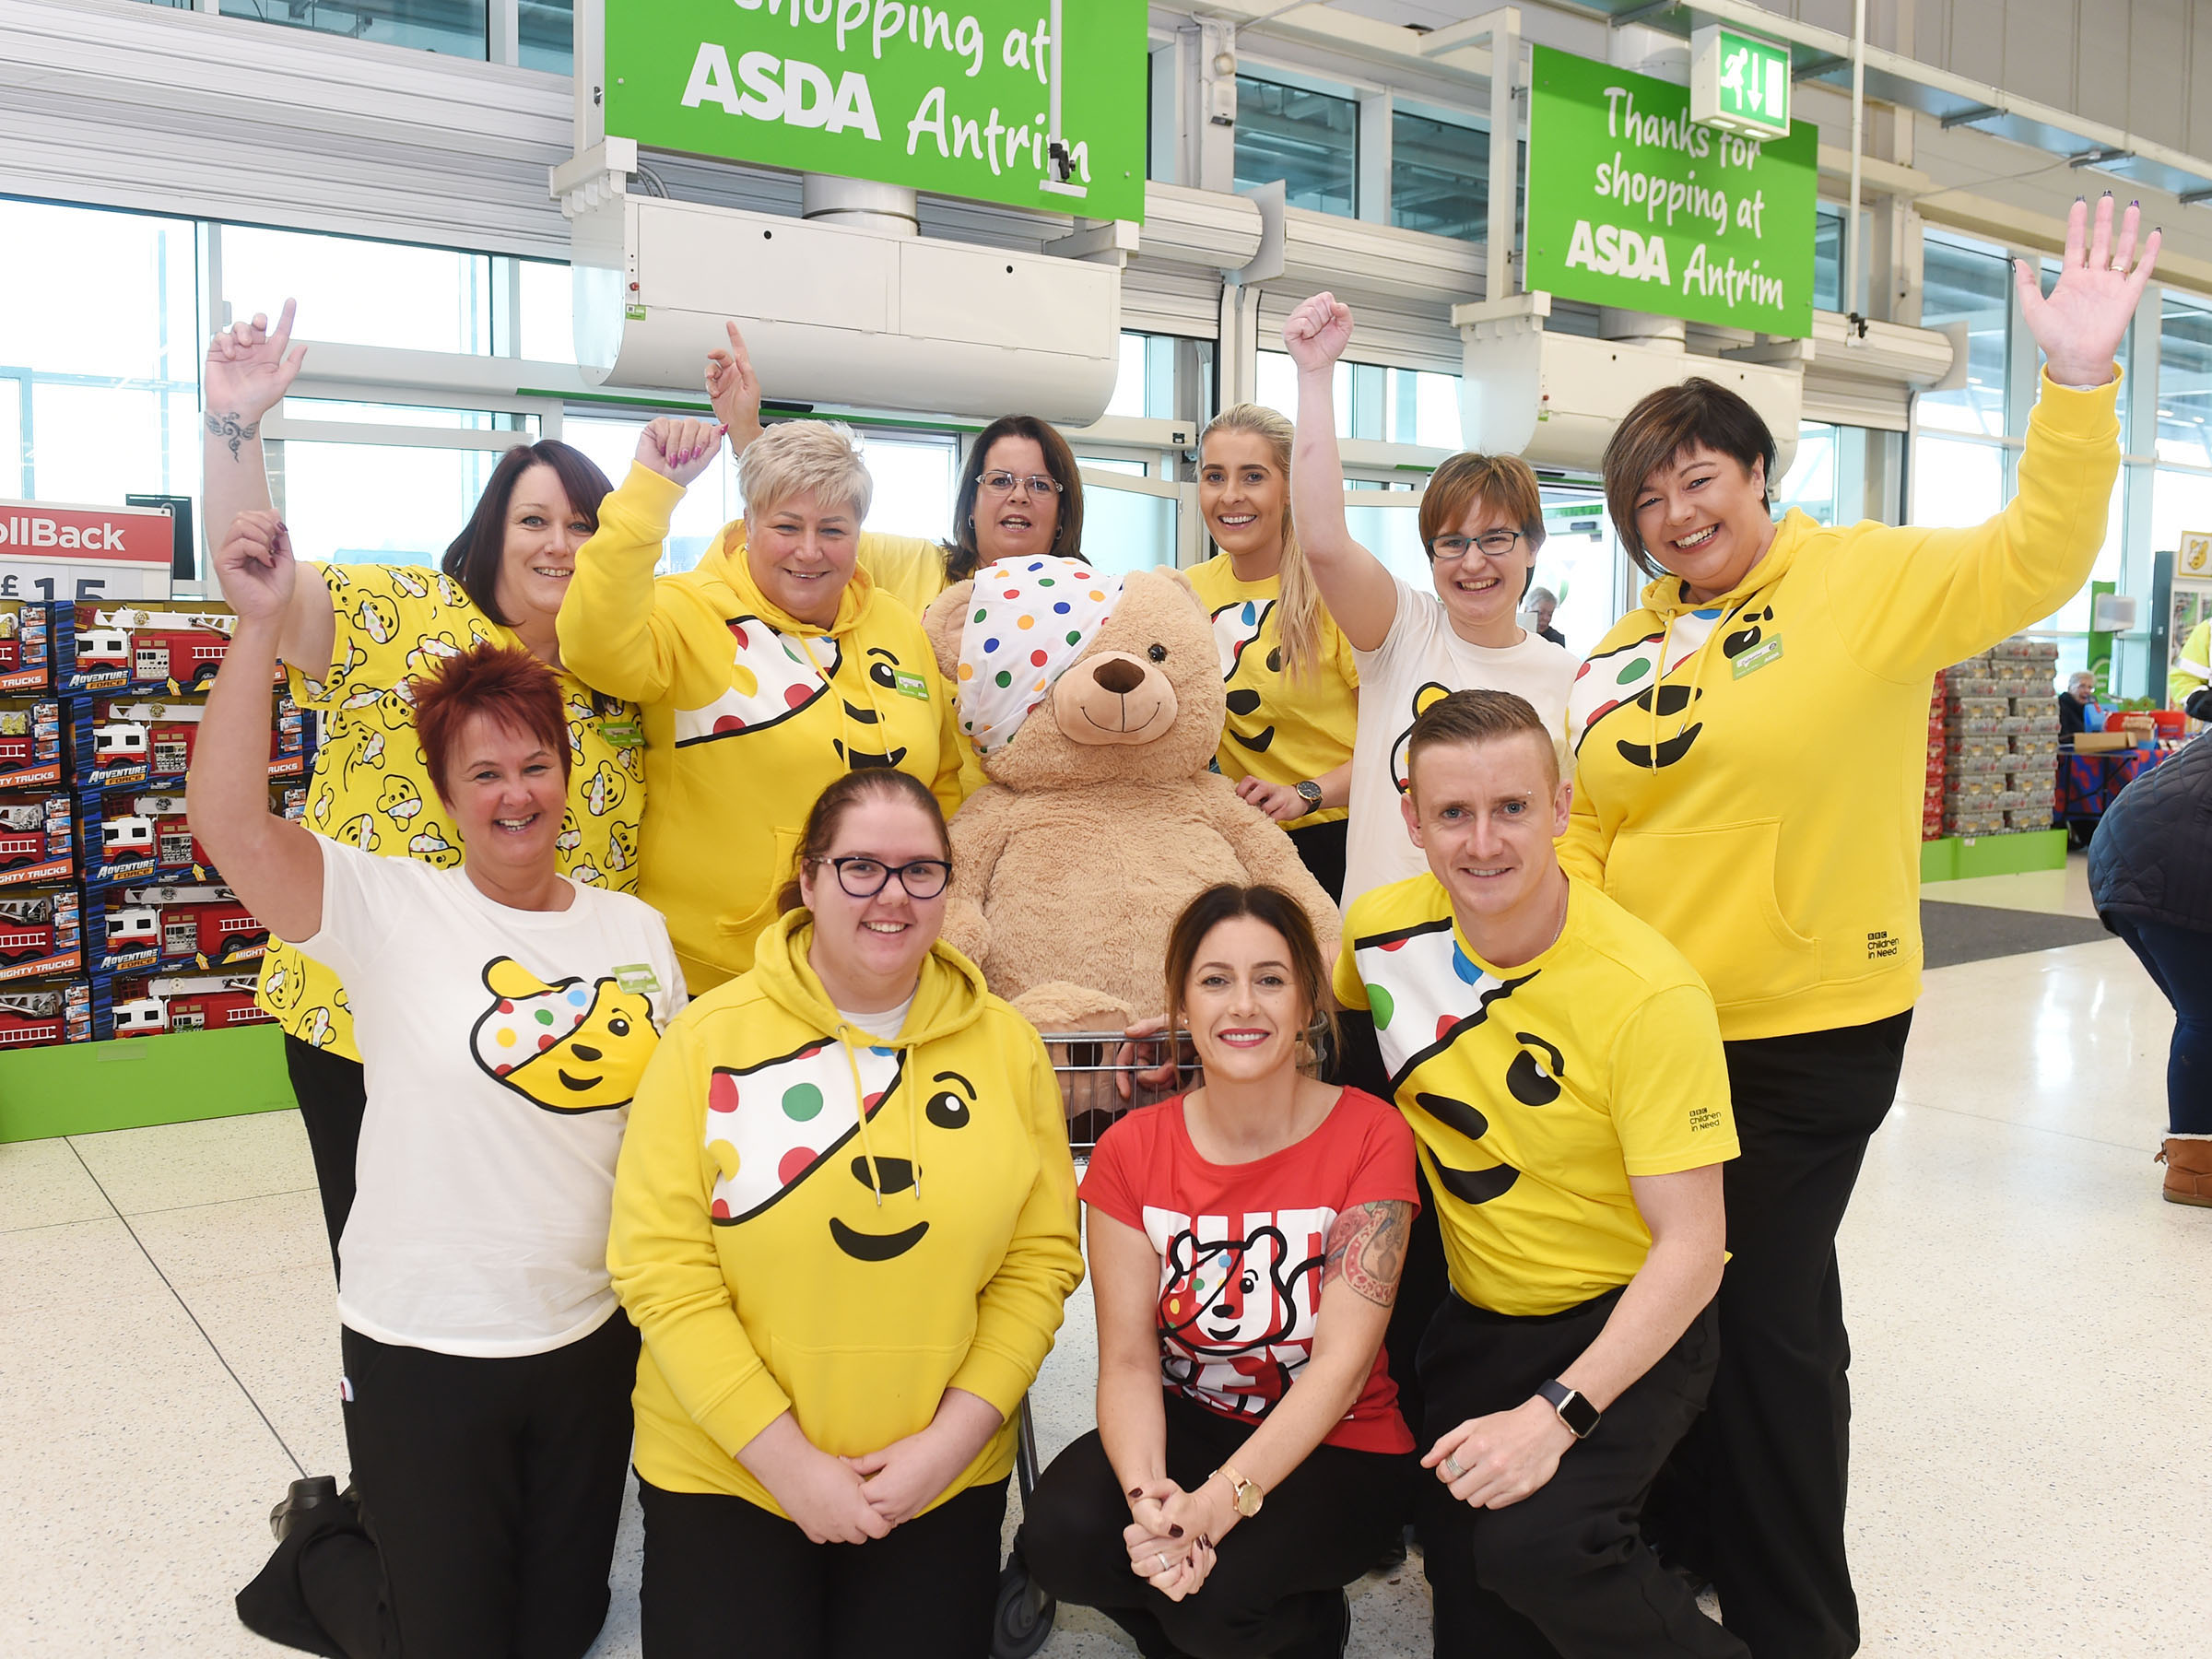 Asda colleagues in NI raise funds for BBC Children in Need